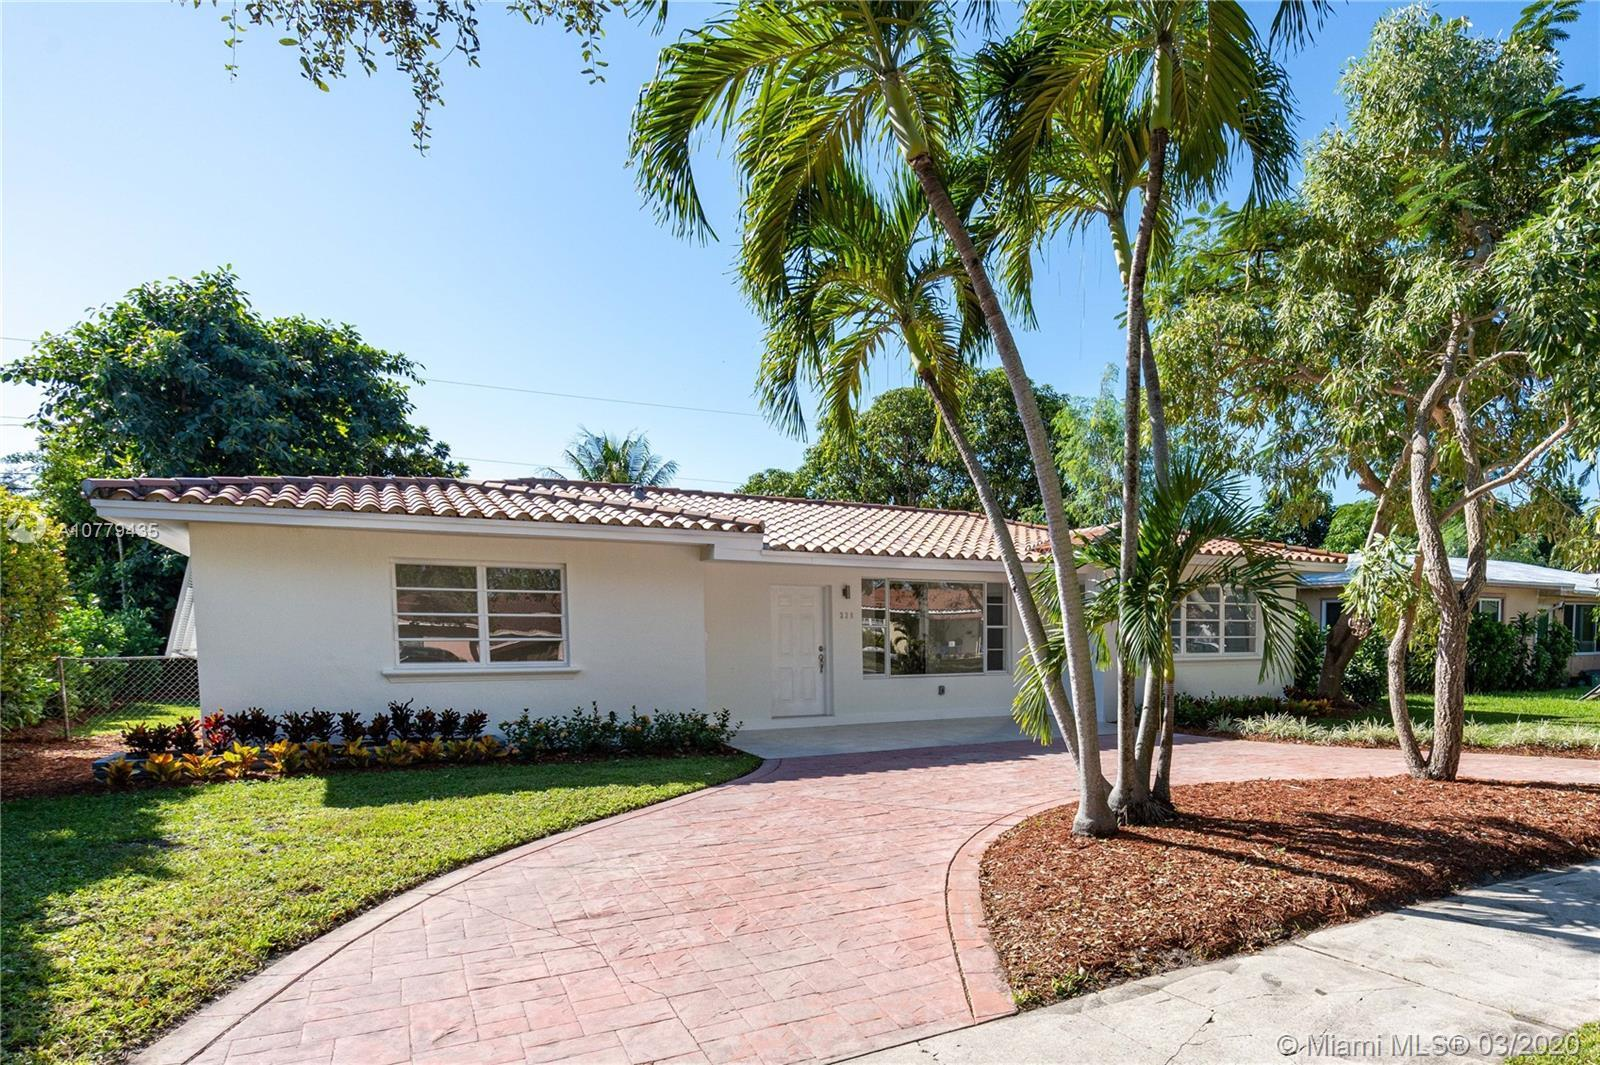 MIAMI SHORES beautiful 3 Bed/2 Bath clay tile roof home fully renovated with all permits. Great spli